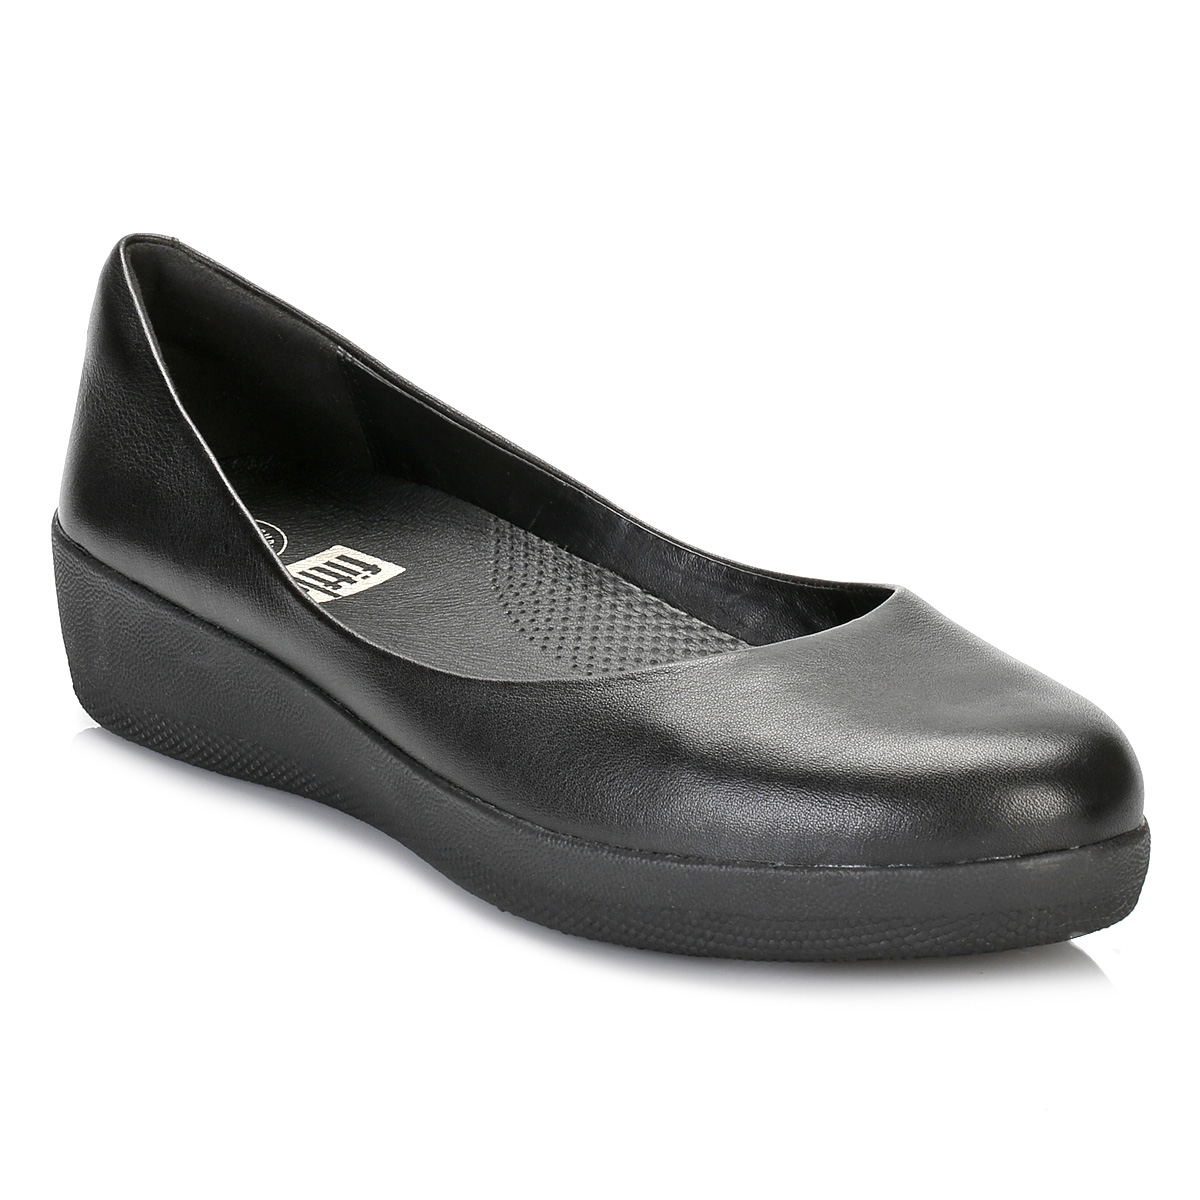 fitflop womens black leather ballerina flat pumps casual